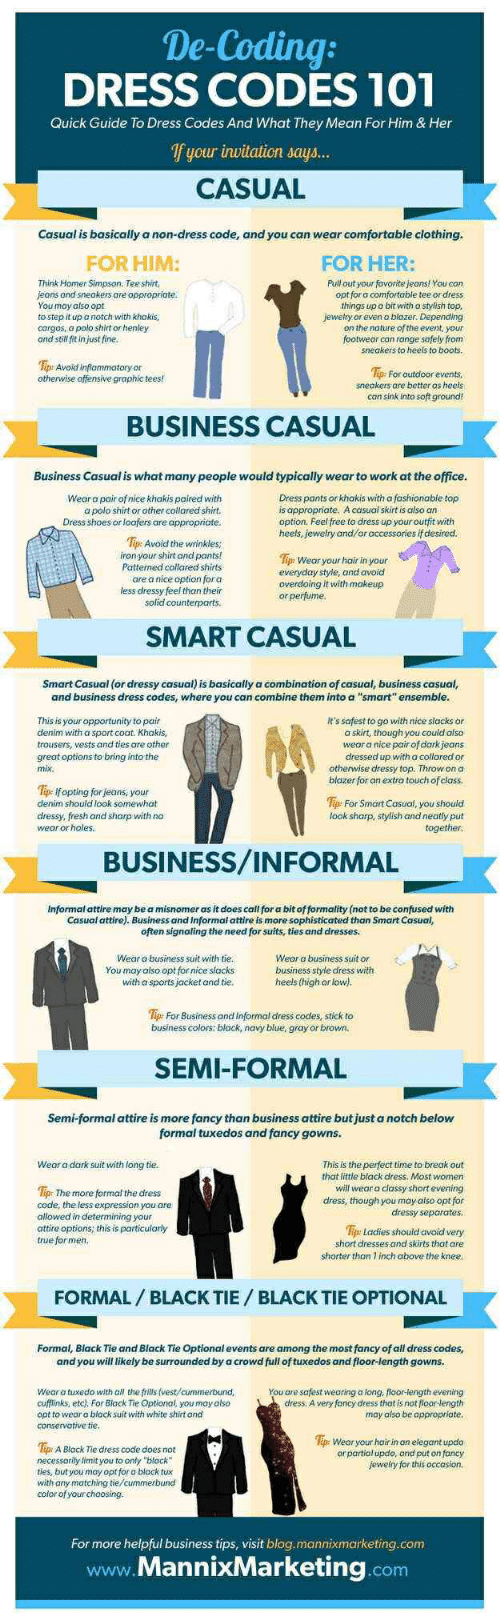 """Comfortable, Confused, and Fresh: De-Coding:  DRESS CODES 101  Quick Guide To Dress Codes And What They Mean For Him & Her  f your invitation says...  CASUAL  Casual is basically a non-dress code, and you can wear comfortable clothing.  FOR HIM:  FOR HER:  Think Homer Simpson. Tee shirt,  Pull out your favorite jeans! You can  ers are oppropriote.  You may also opt  things up o bit with a stylish top,  jewelry or even o blazer. Depending  on the nature of the event, your  footwear can range safely from  sneakers to heels to boots.  to step it up a notch with khakis,  cargos, a polo shirt or henley  and still fit in just fine.  Vip Avoid inflammatory or  otherwise offensive graphic tees!  Tip: For outdoor events,  sneakers are better as heels  can sink into soft ground!  BUSINESS CASUAL  Business Casual is what many people would typically wear to work at the office.  Weara pair of nice khakis paired with  a polo shirt or other collared shirt.  Dress shoes or loafers are appropriote.  Dress pants or khakis with a fashionable top  ippropriate A casual skirt is aiso an  ith  heels, jewelry and/or accessories if desired.  Tipe Avoid the wrinkles  iron your shirt and pants!  Patterned collared shirts  are a nice option for a  less dressy feel than their  solid counterparts.  Tip: Wear your hair in your  everyday style, and avoid  overdoing it with makeup  or perfume.  SMART CASUAL  Smart Casual (or dressy casual) is basically a combination of casual, business casual,  and business dress codes, where you can combine them into a """"smart"""" ensemble.  lt's safest to go with nice slacks or  skirt, though you could also  weara nice pair of dark jeans  dressed up with a collared or  otherwise dressy top. Throw orn a  blazer for an extra touch of class  This is your opportunity to pair  denim with a sport coat. Khakis,  trousers, vests and ties are other  great options to bring into the  Tips Ifopting for jeans, your  denim should look somewhat  Tipe For Smart Casual, you should  d"""